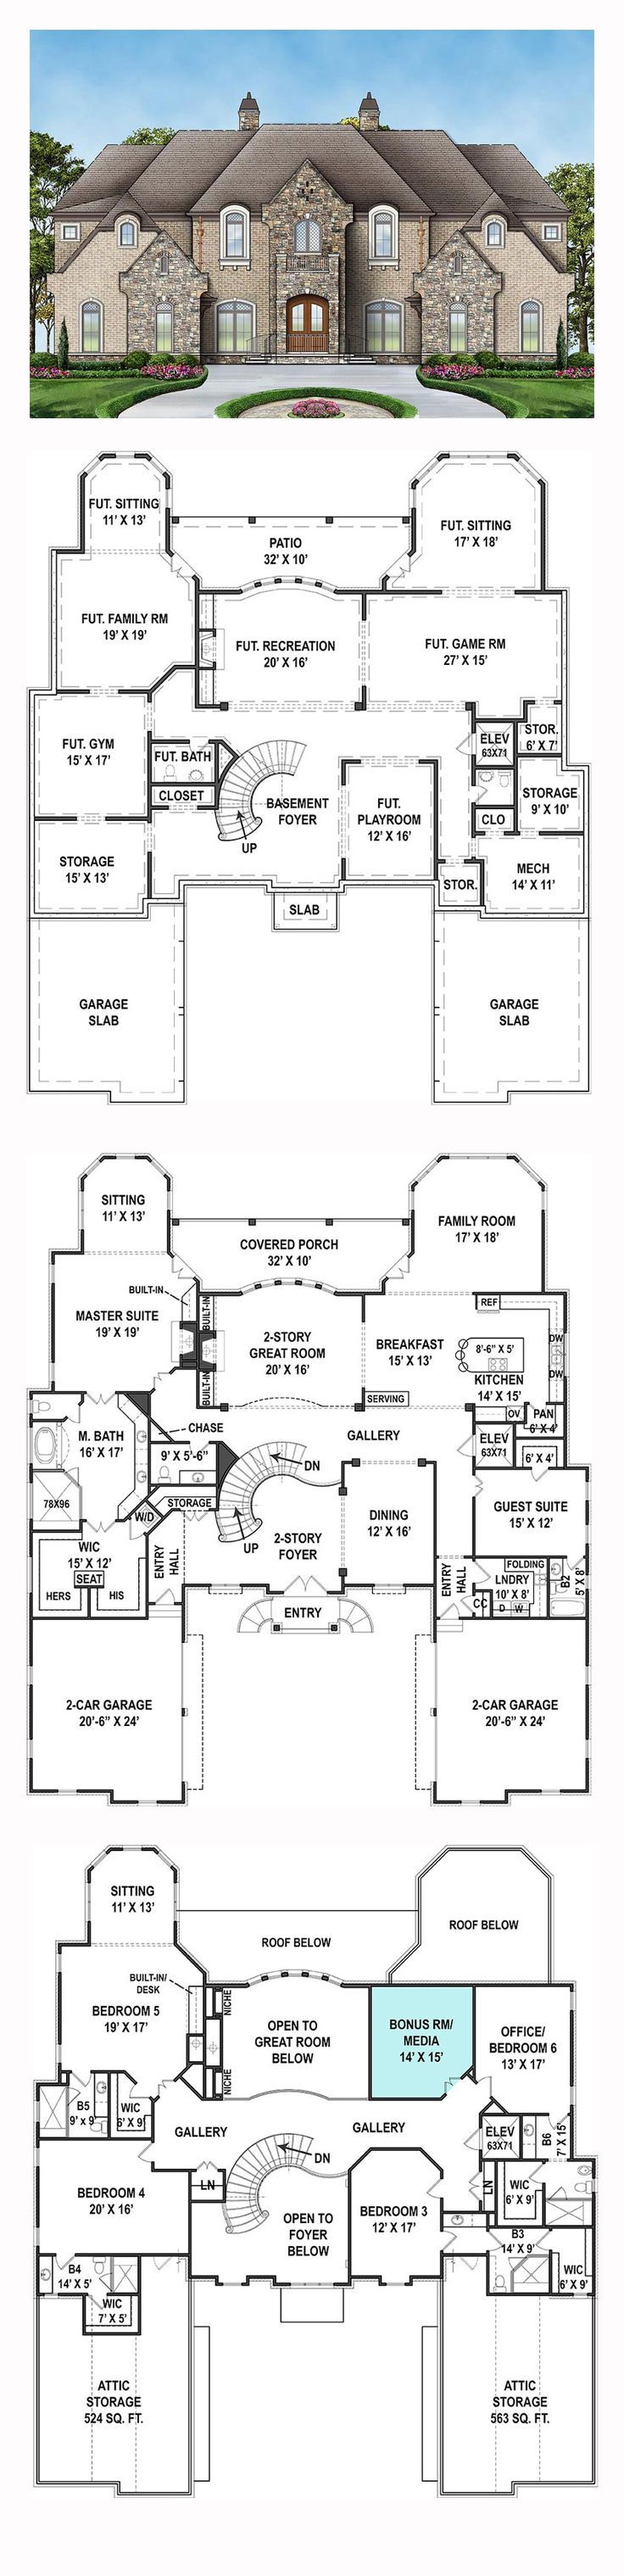 Best 25 new house plans ideas on pinterest 5 bedroom for House plans and blueprints